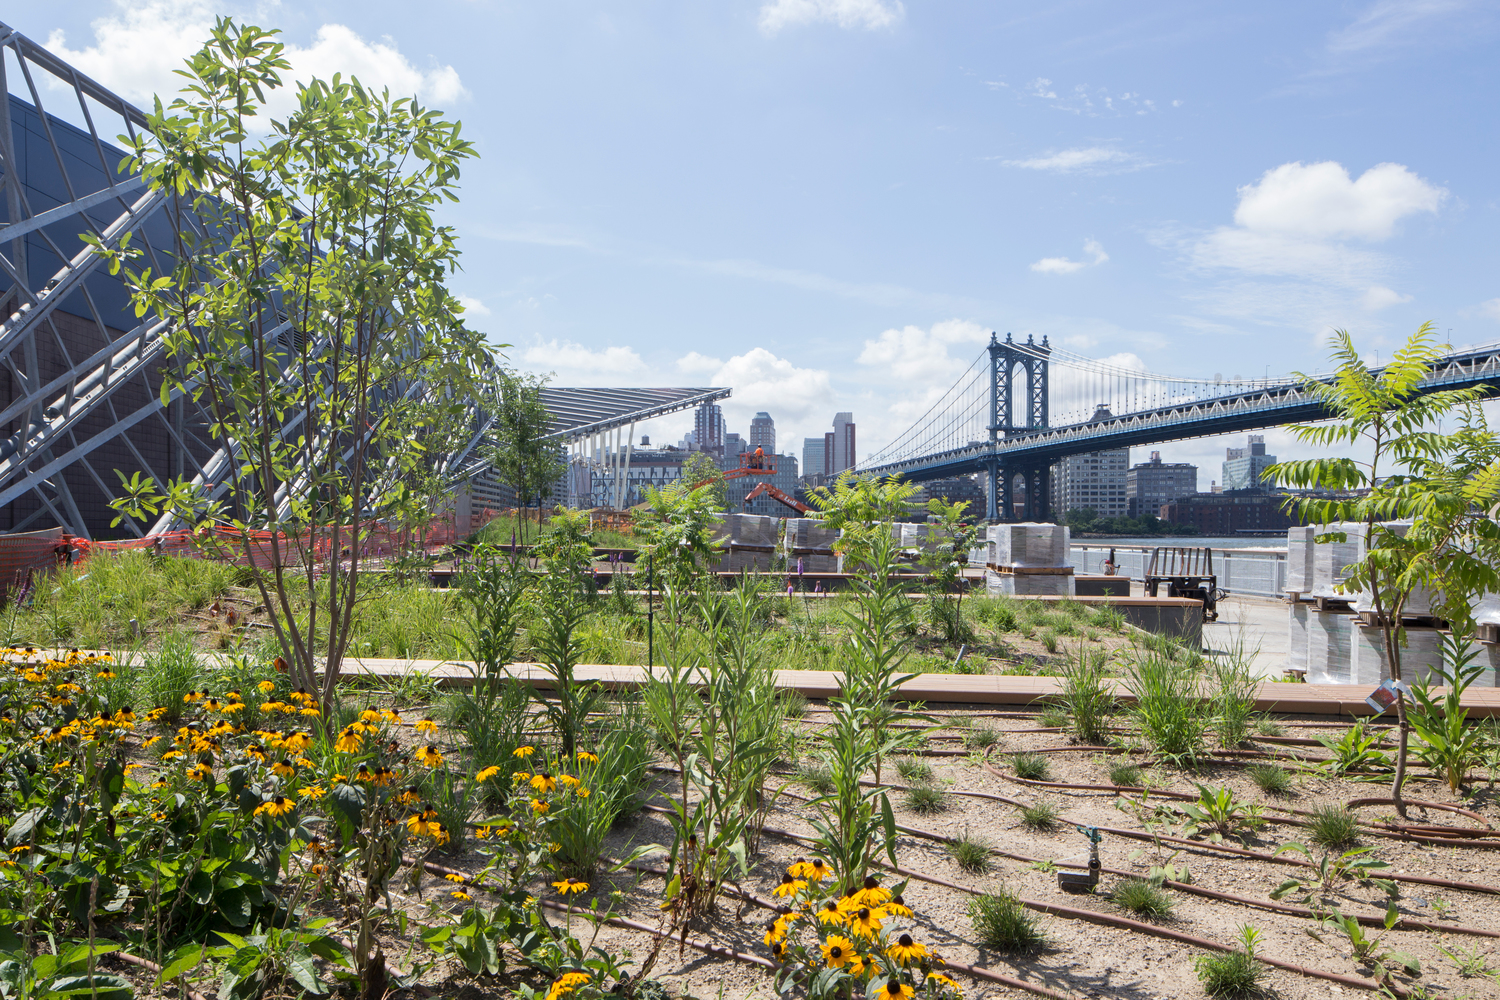 Long-awaited Pier 35 park on the Lower East Side finally debuts